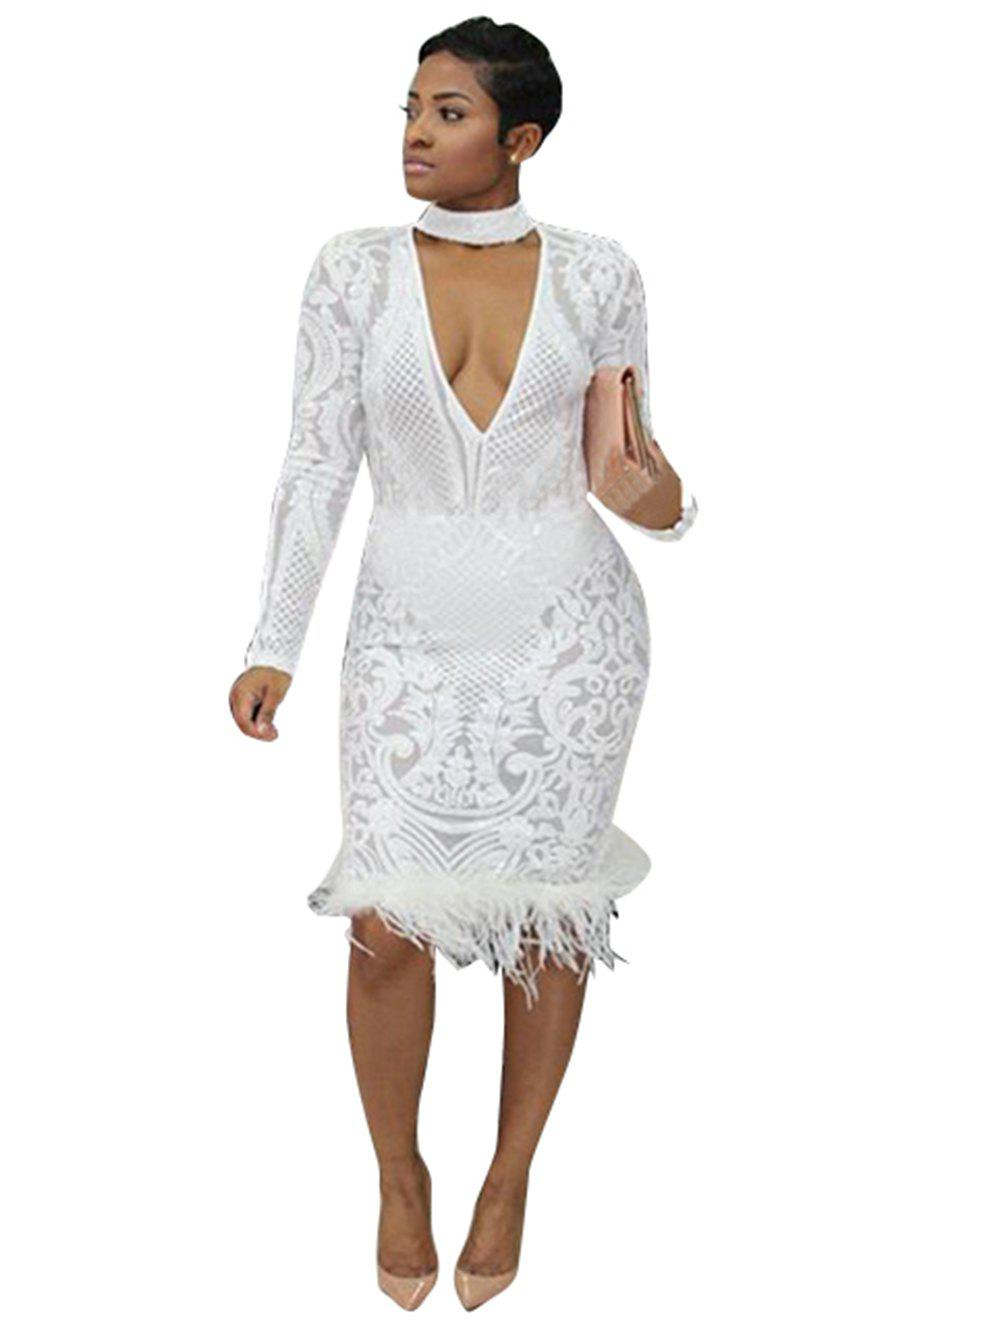 Fashion Women Sexy Sequin Lace Ball Dress Romantic Lace Beading Bridal Gown Wedding Dress Party Dress